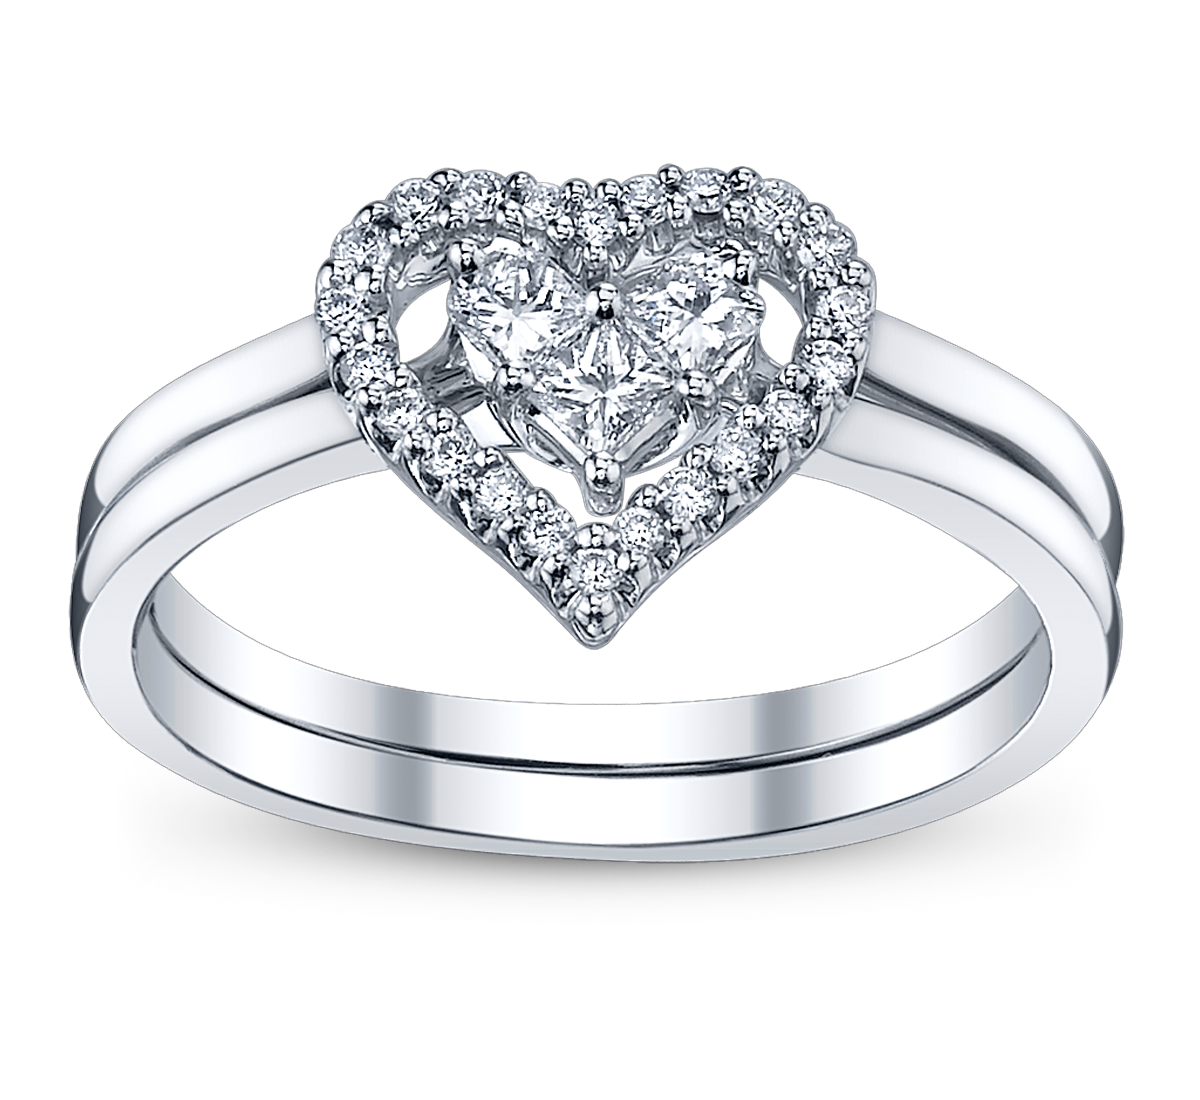 diamond heart wedding ring set from robbins brothers sku 0374029 - Perfect Wedding Ring